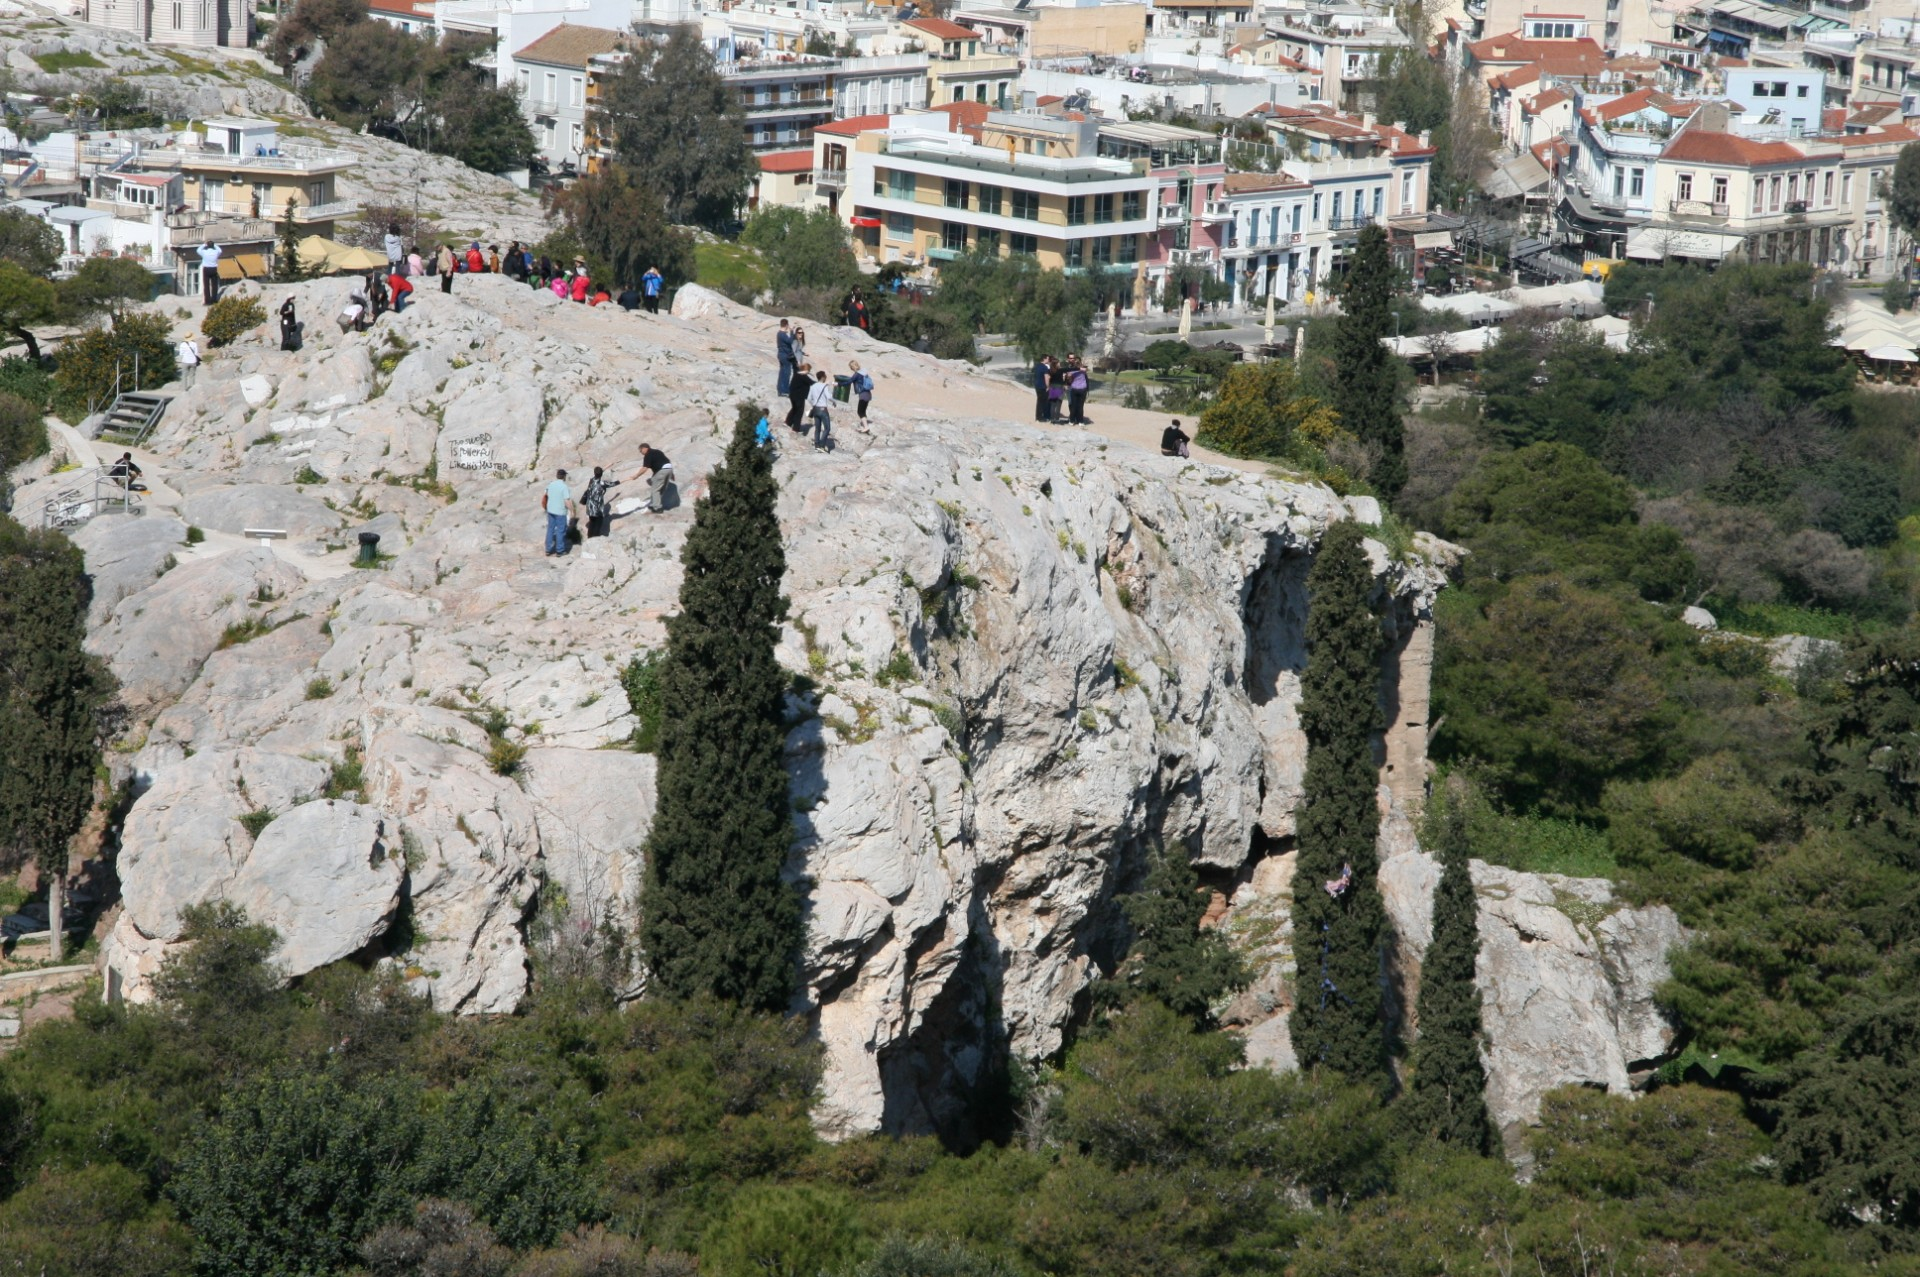 Areopagus - Mars Hill - Athens Greece